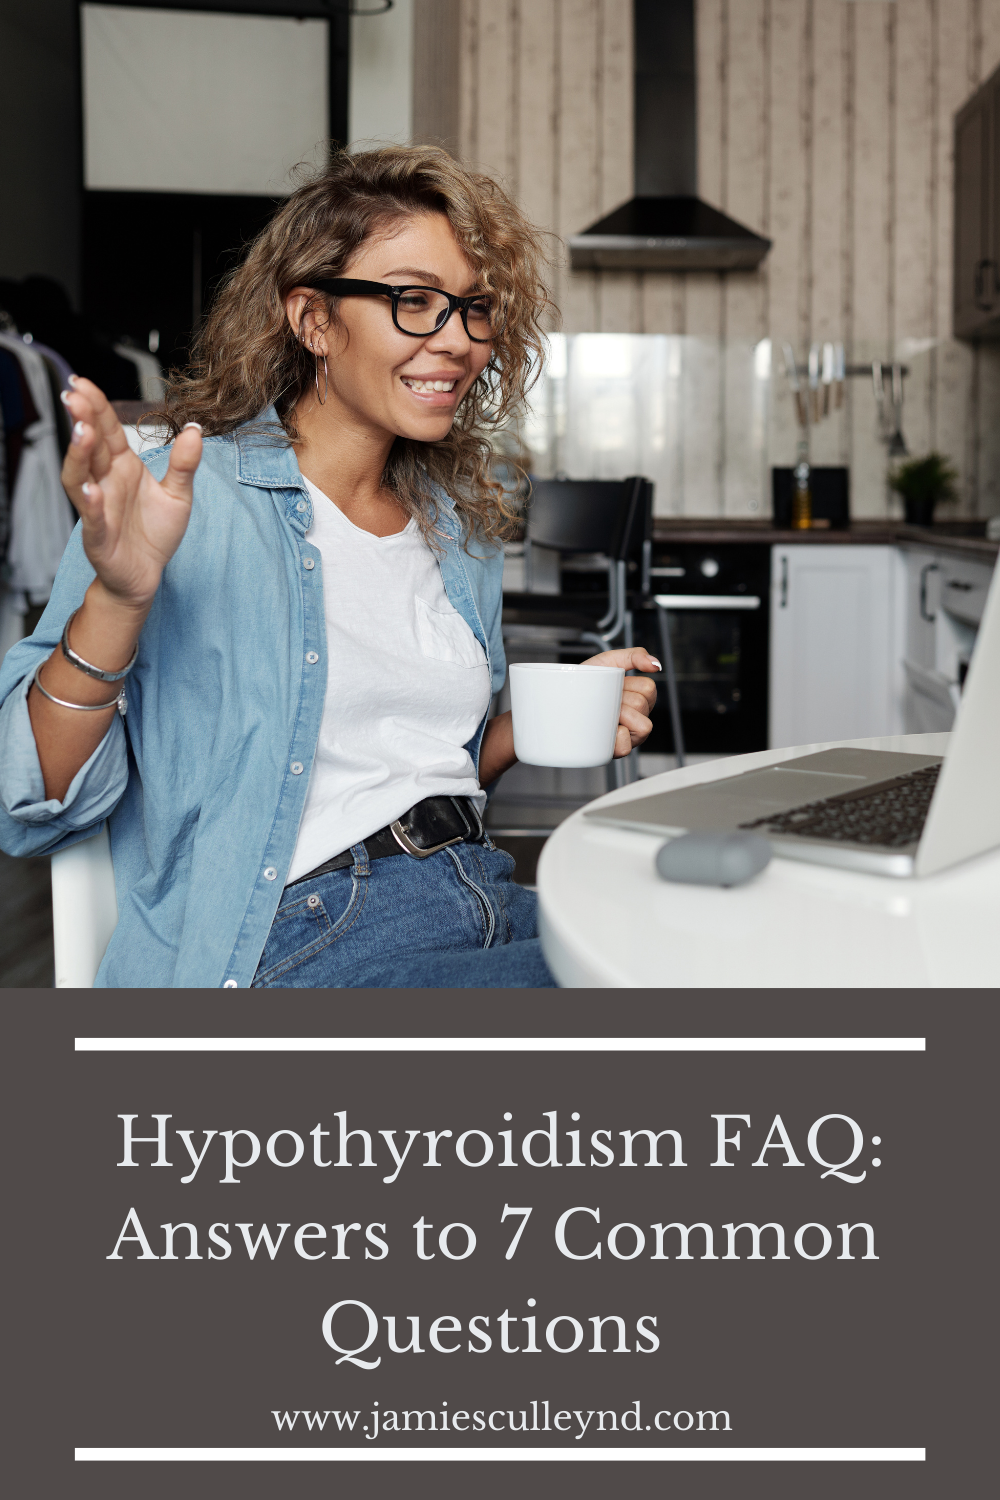 woman on laptop holding cup of coffee hypothyroidism faq answers to common questions